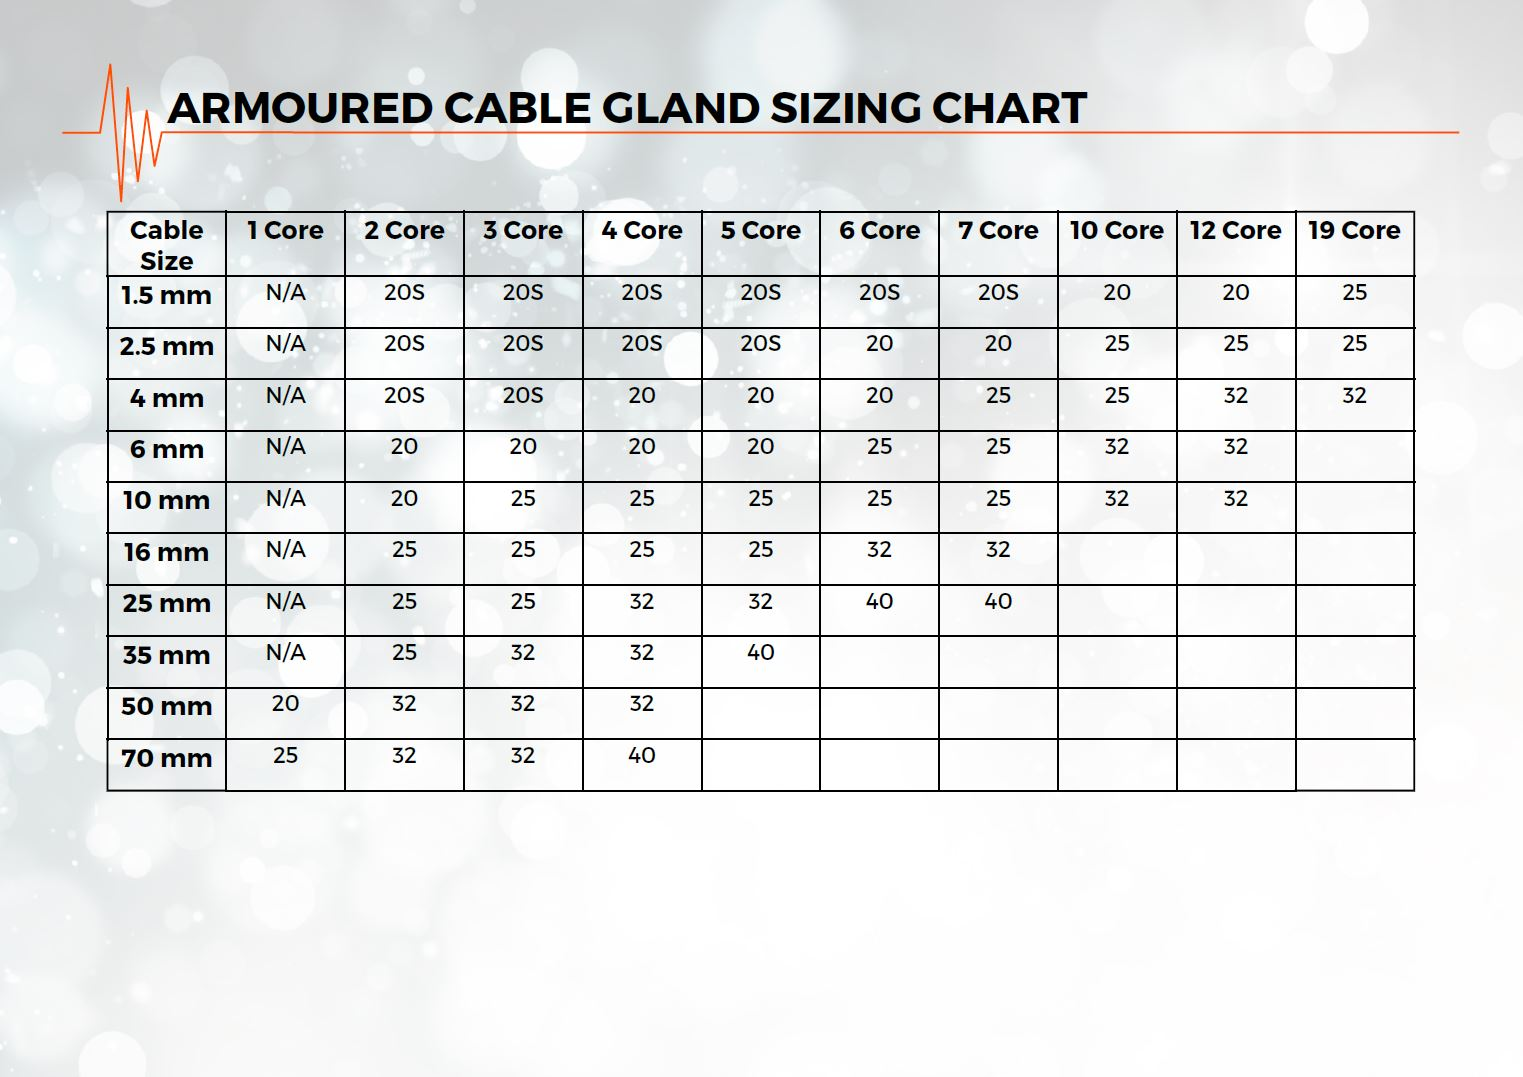 Craftsman Table Saw Wiring Diagram Will Be A Thing Electrical Wire Size Chart In Mm Gallery 10 Inch